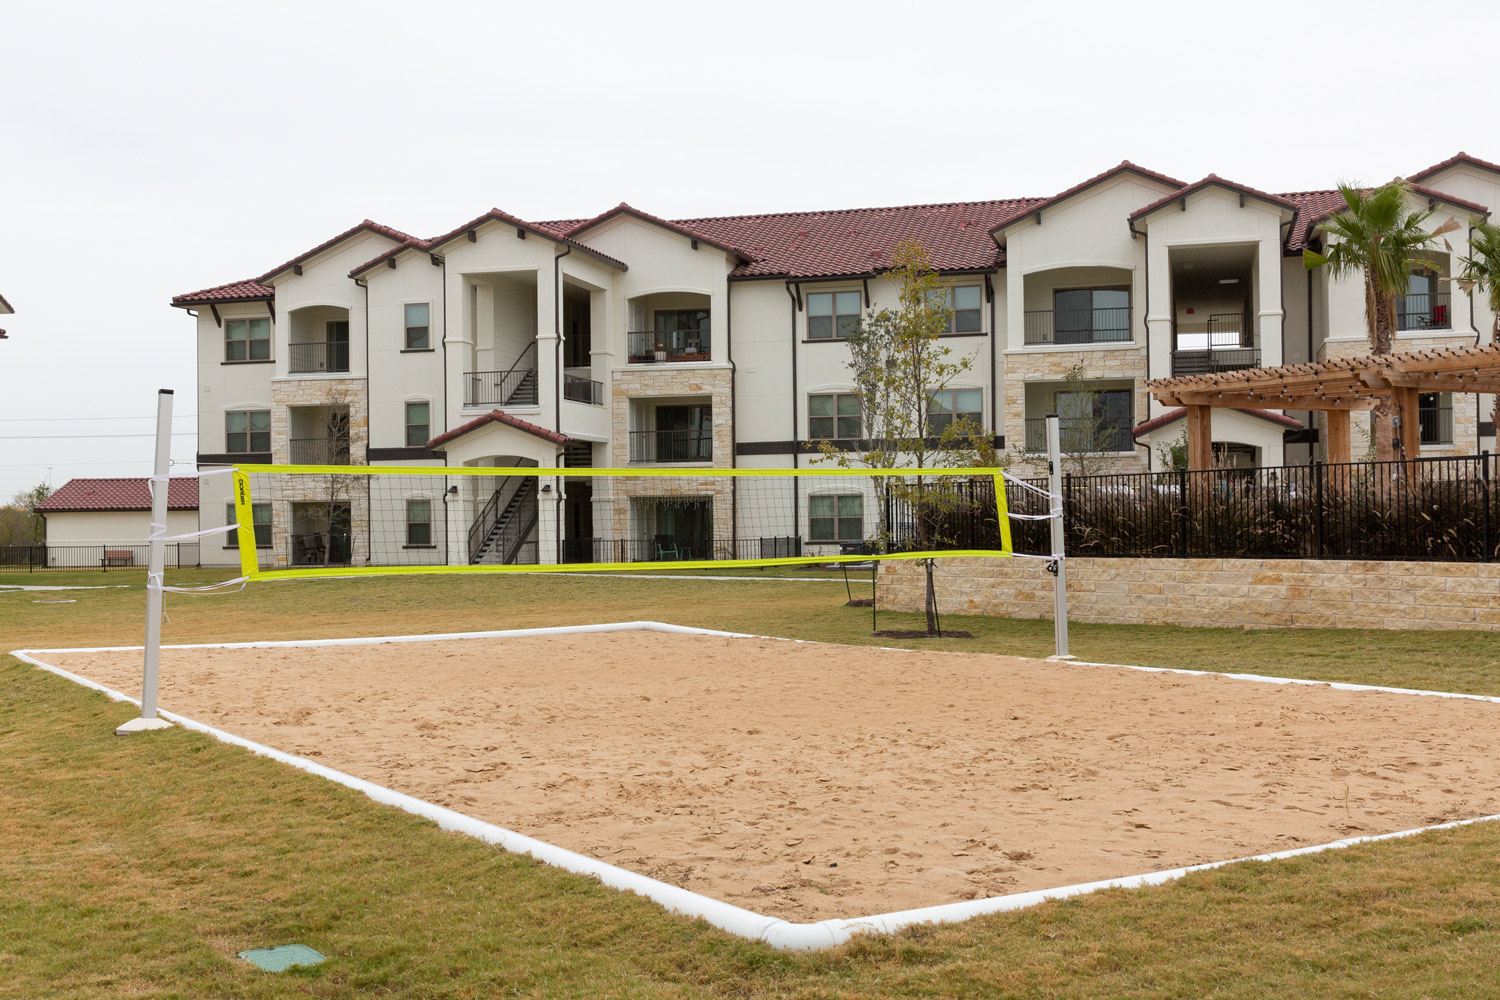 Sand Volleyball Court at Oxford at Santa Clara Apartments in Pflugerville, Texas